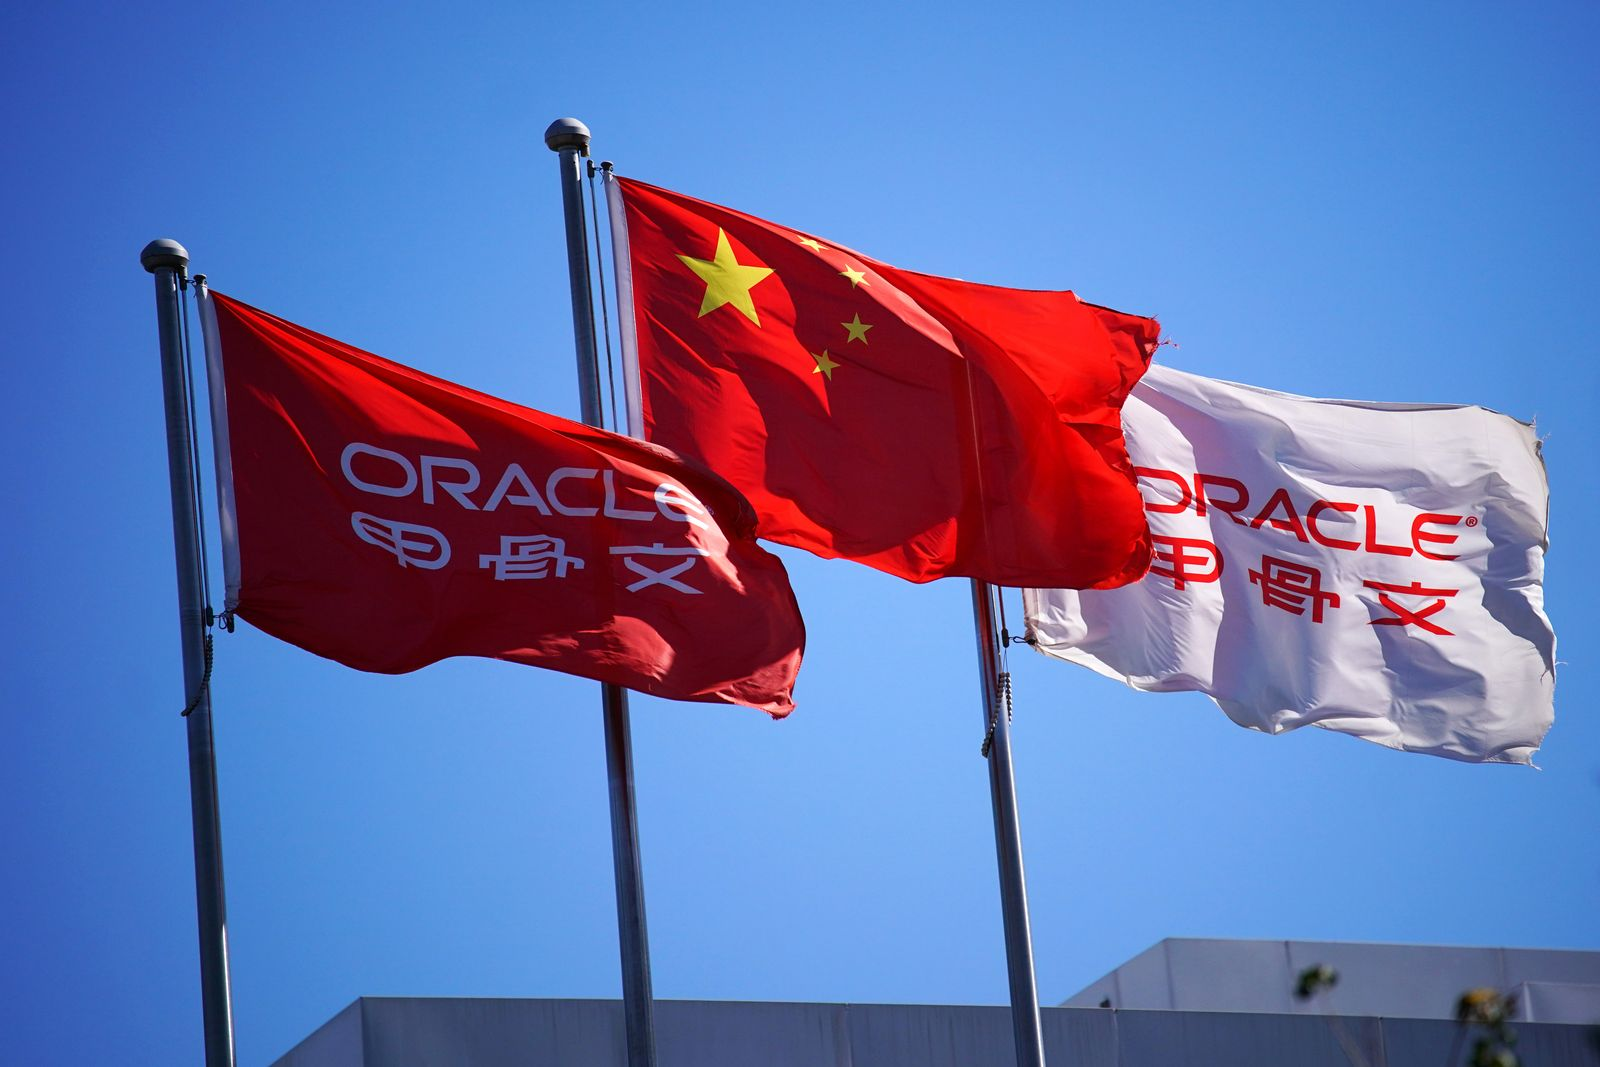 Chinese National flag flutters among flags of Oracle at its office buildings in Beijing